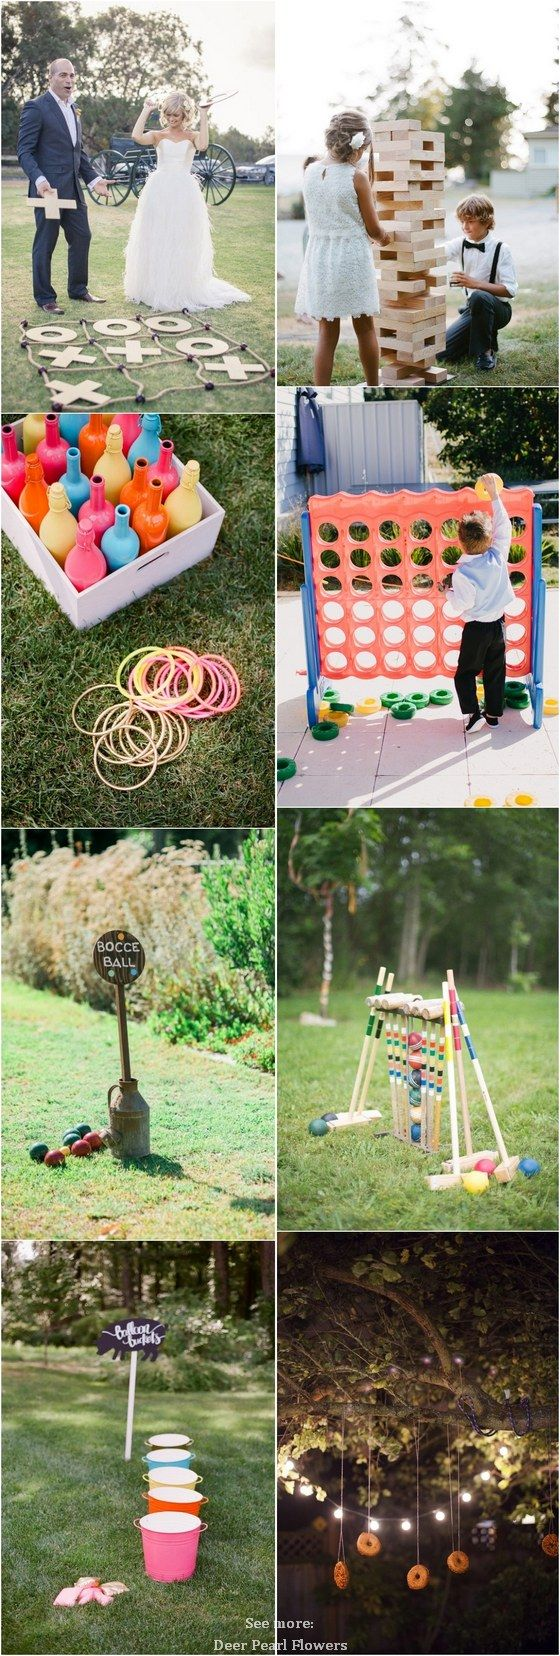 Backyard Wedding Games 45 fun outdoor wedding reception lawn game ideas | outdoor weddings